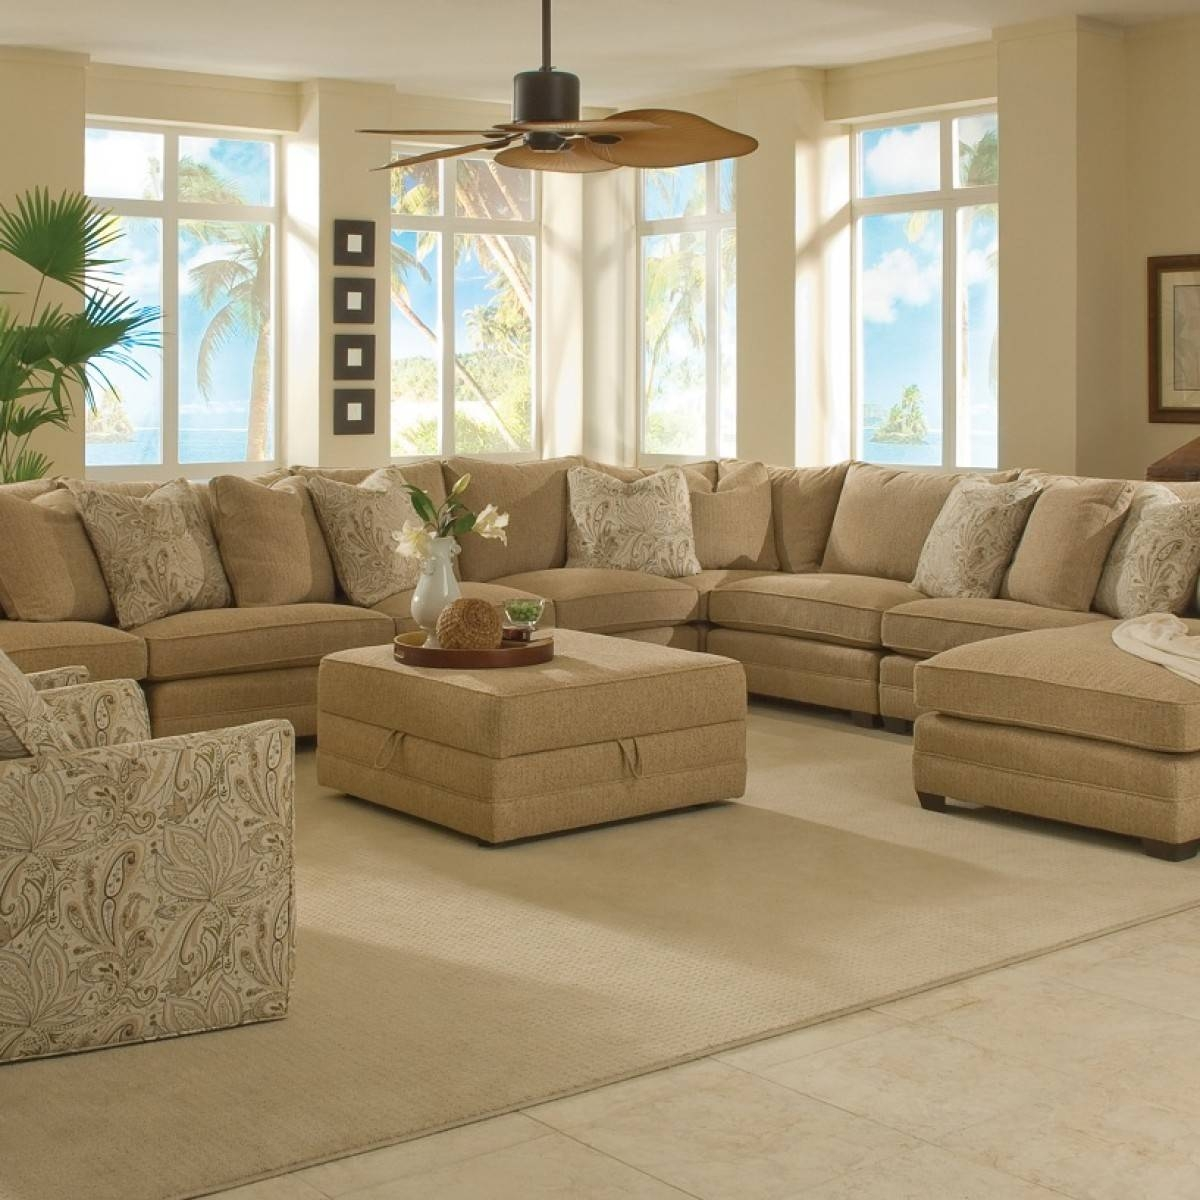 Furniture: Comfy Sectional Sofa | Huge Sectional Sofas | Extra in Oversized Sectional Sofa (Image 6 of 30)